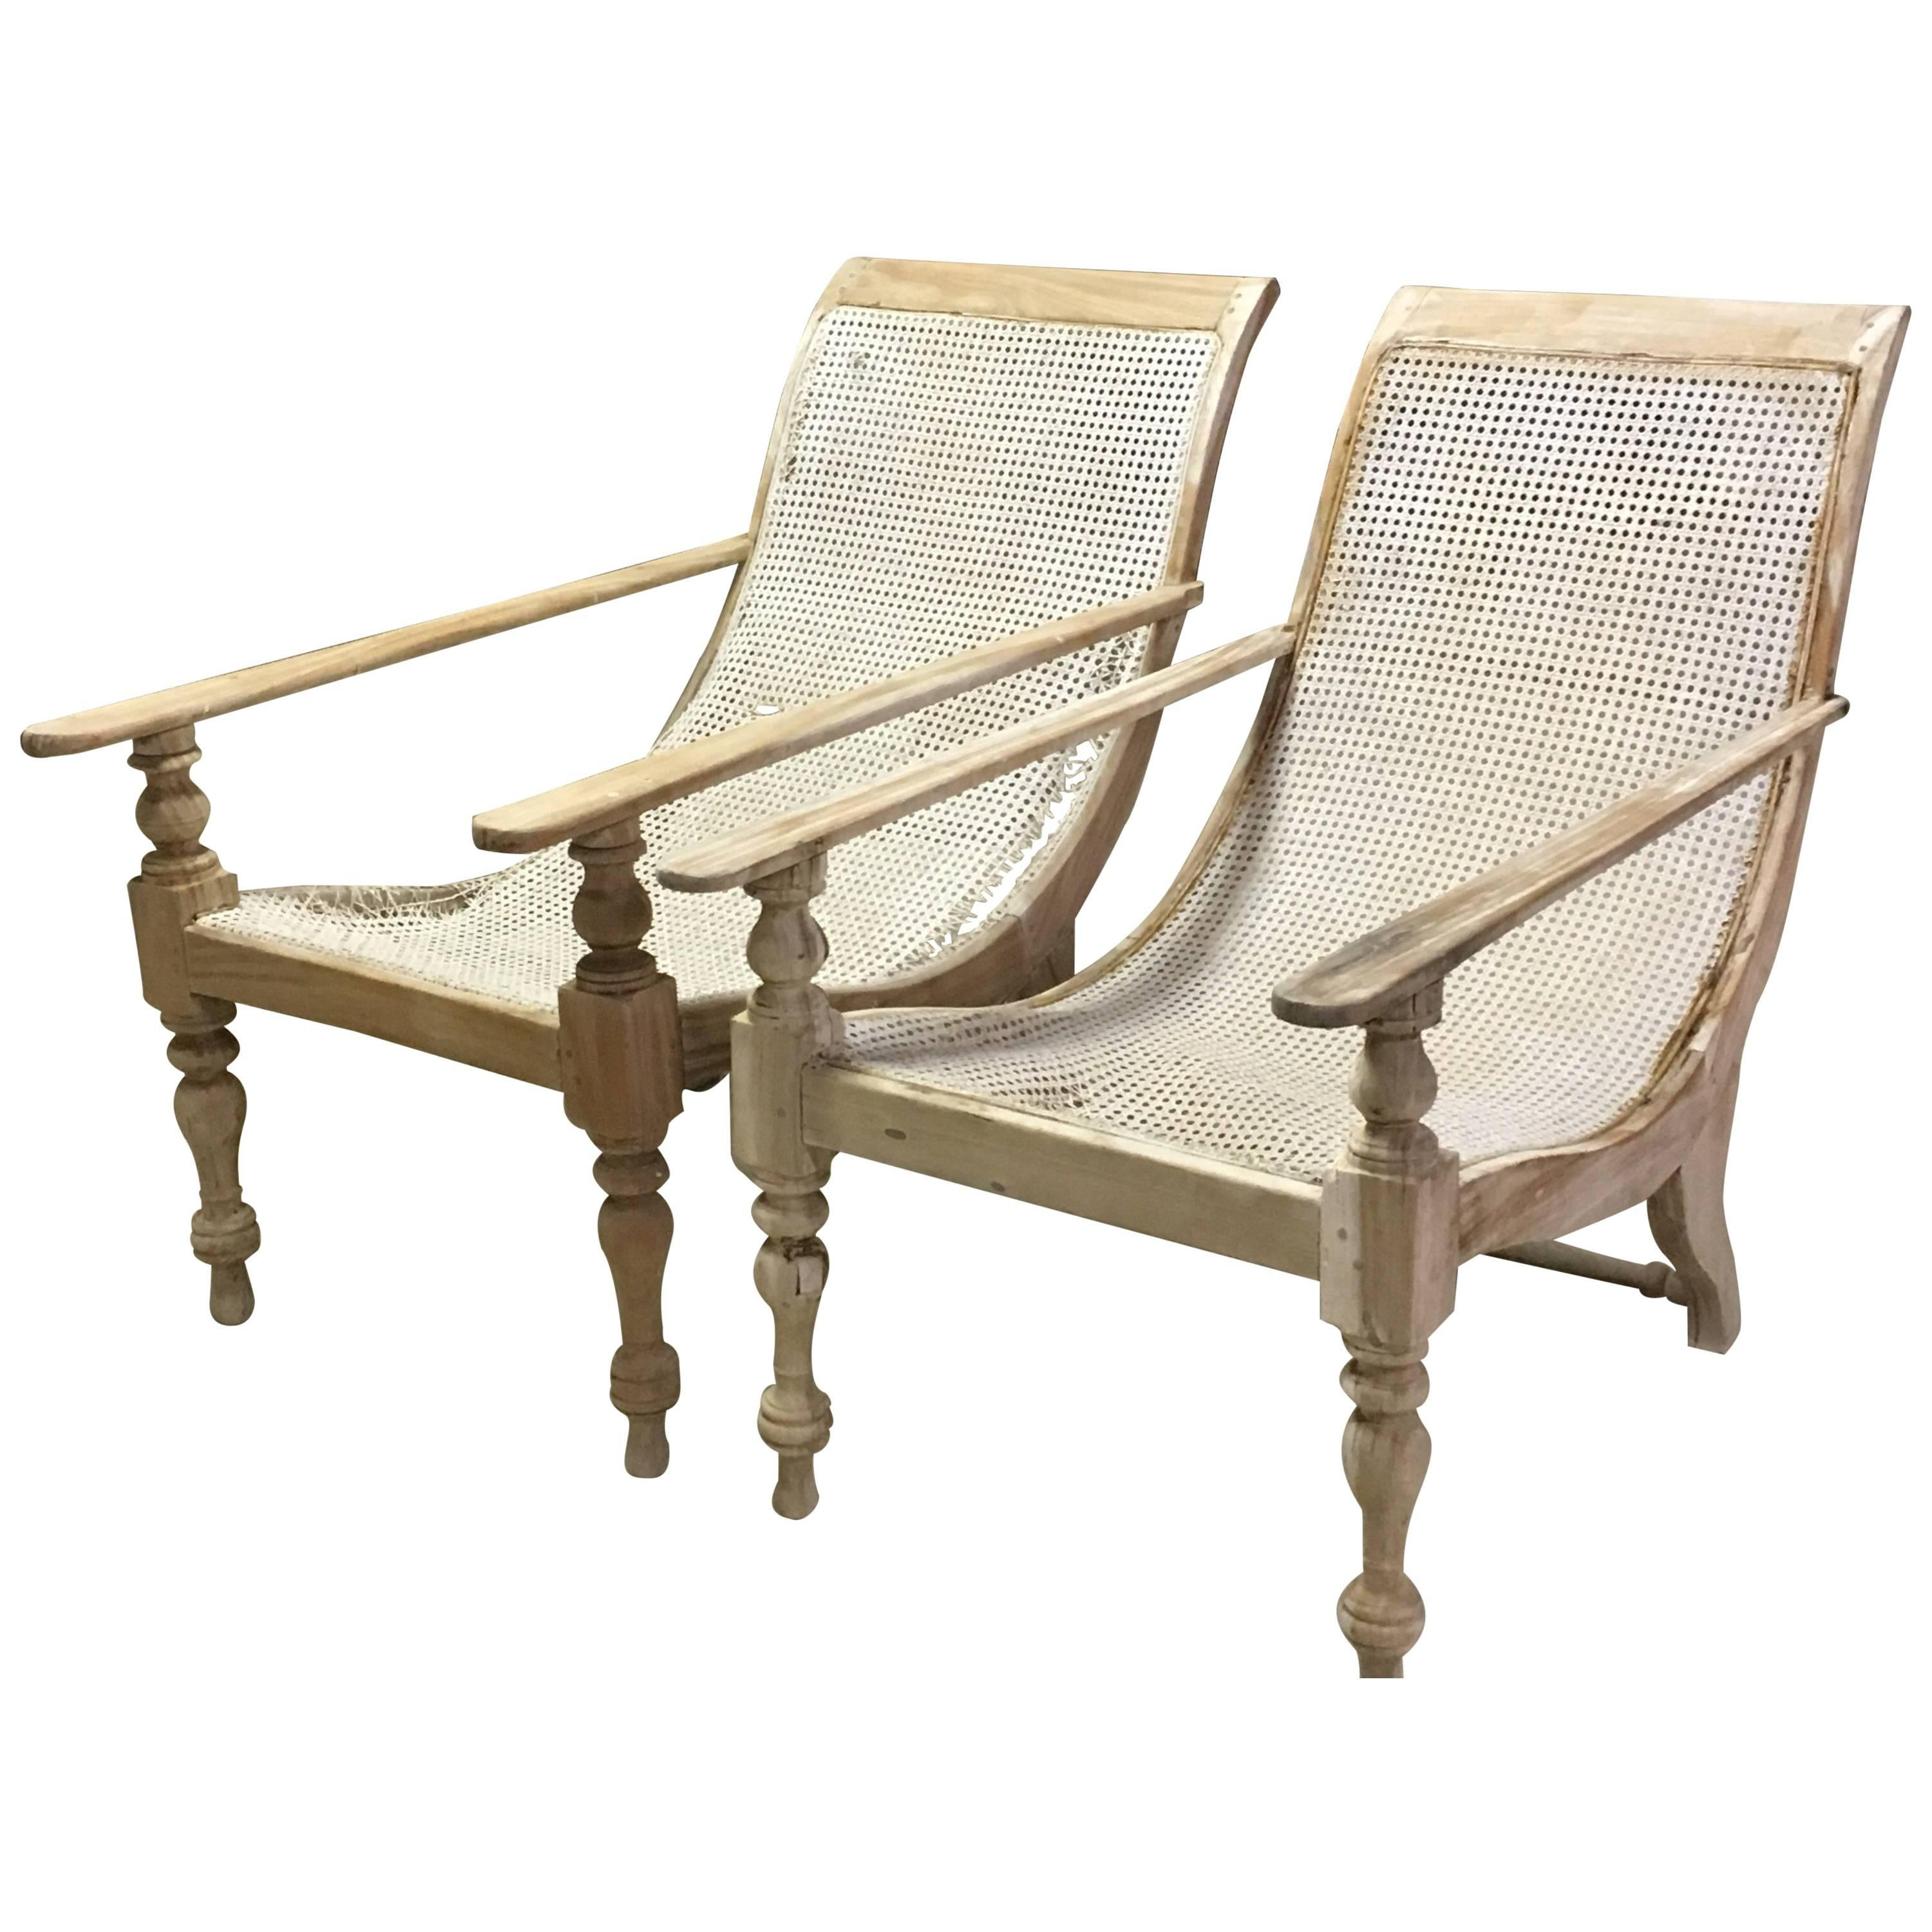 Merveilleux Pair Of Dutch Colonial Solid Satinwood Caned Sling Back Planters Chairs,  1850 For Sale